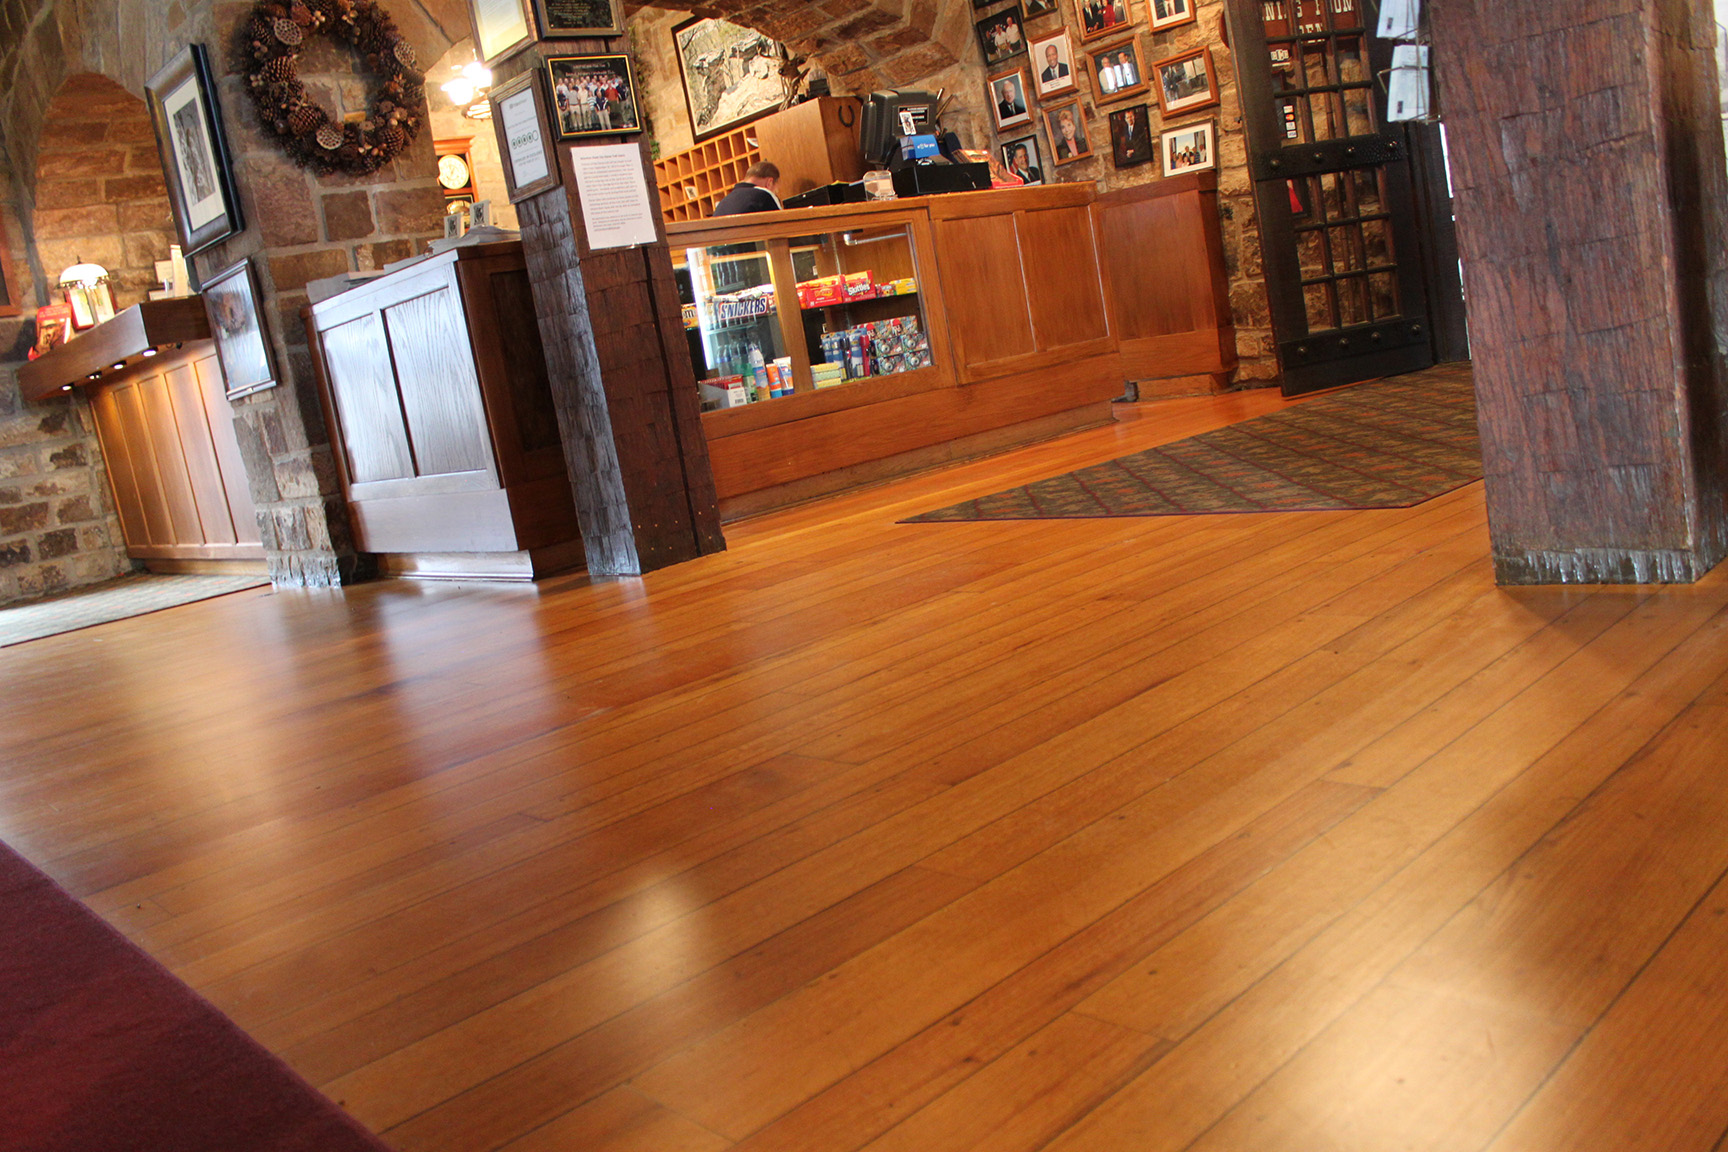 Southern Illinois Hardwood Floor Refinishing Fabulous Hardwood Floors - Reseal wood floor